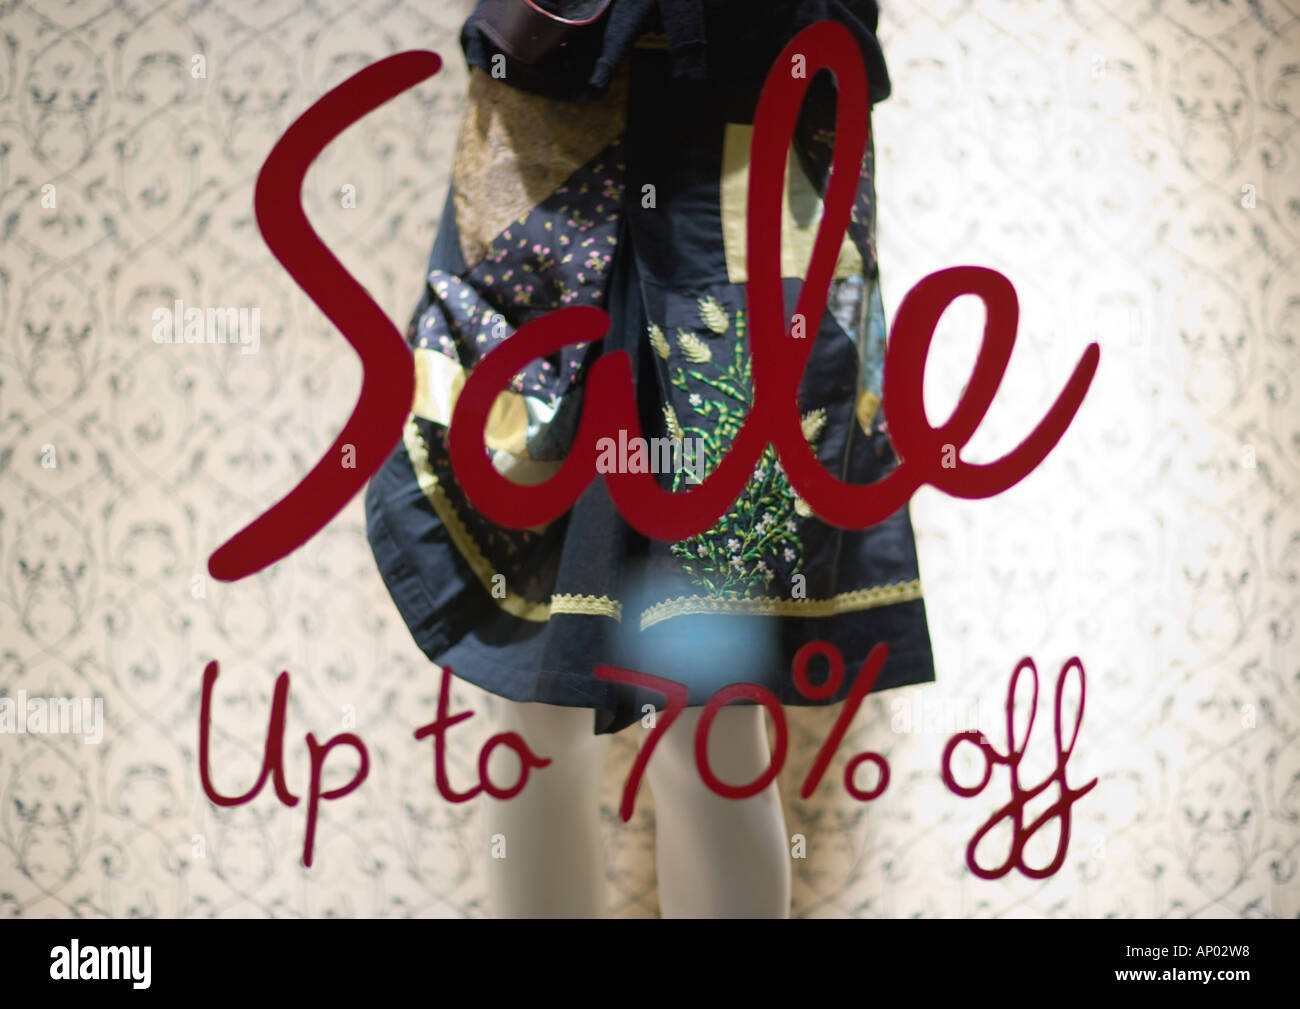 Sale sign on shop window - Stock Image